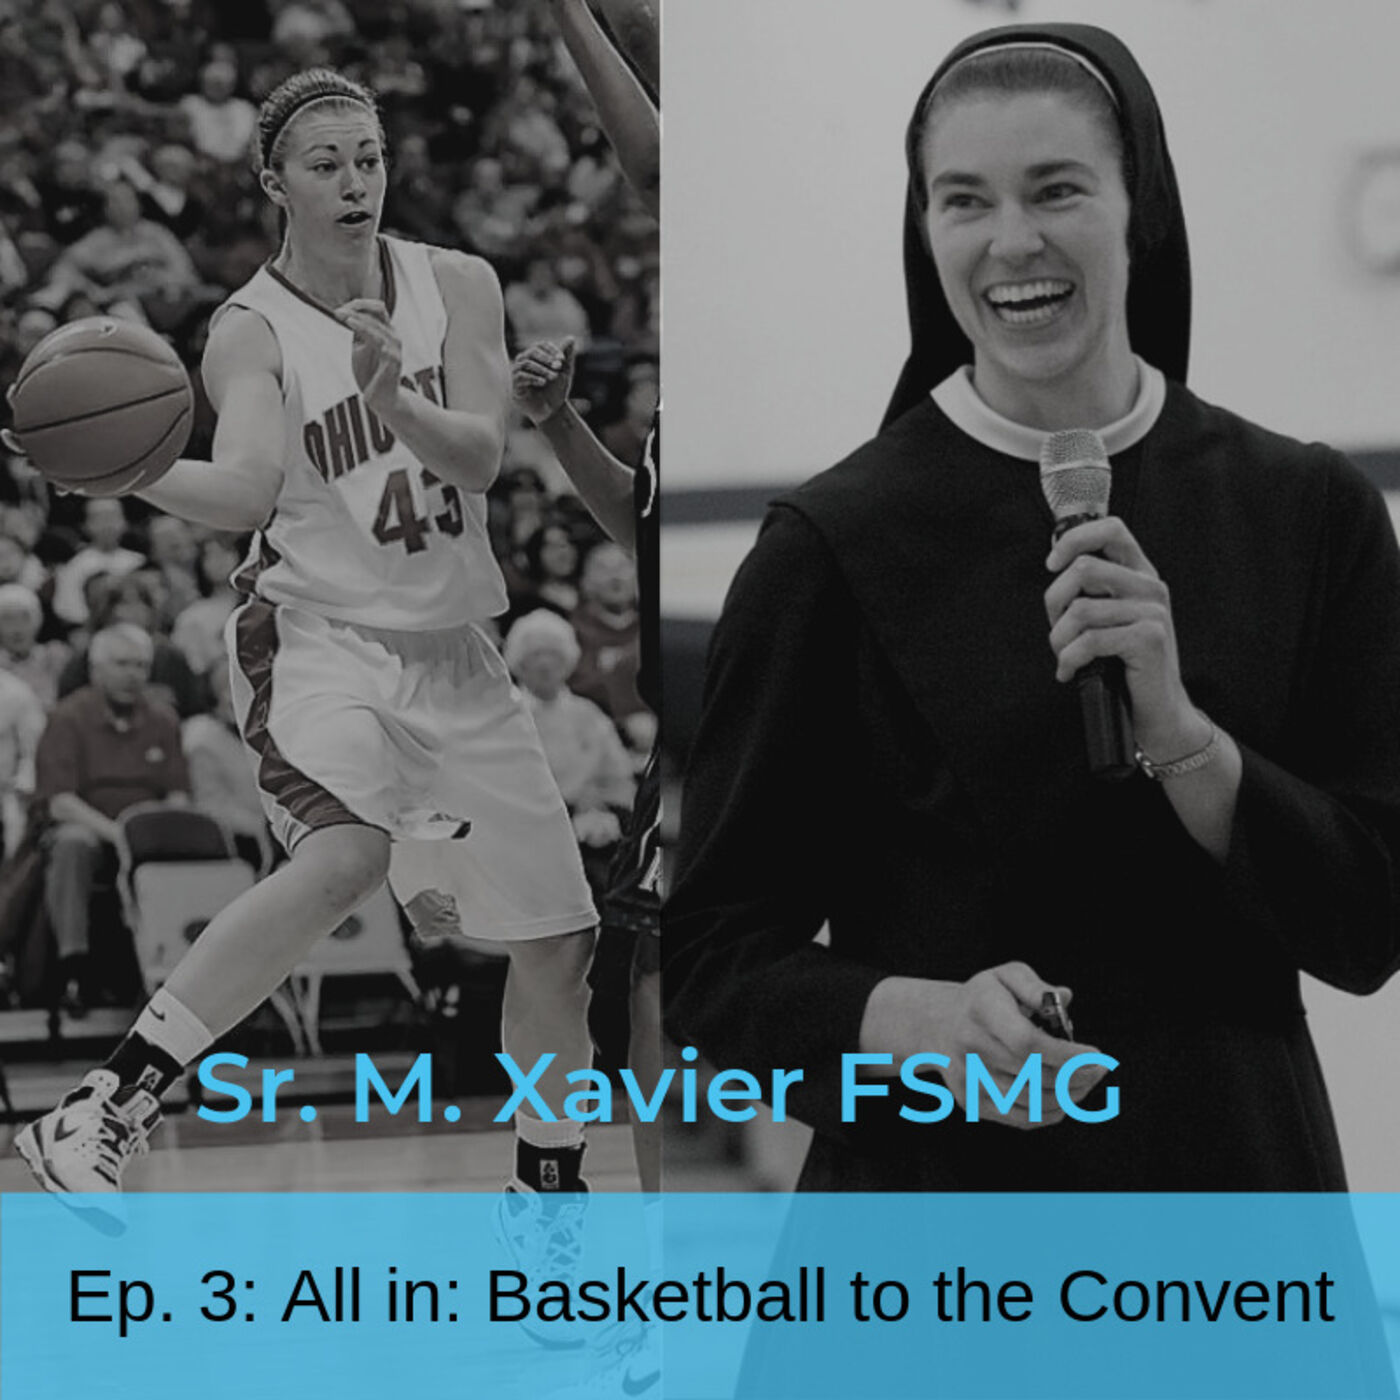 Sr. M. Xavier: All in: Basketball to the Convent